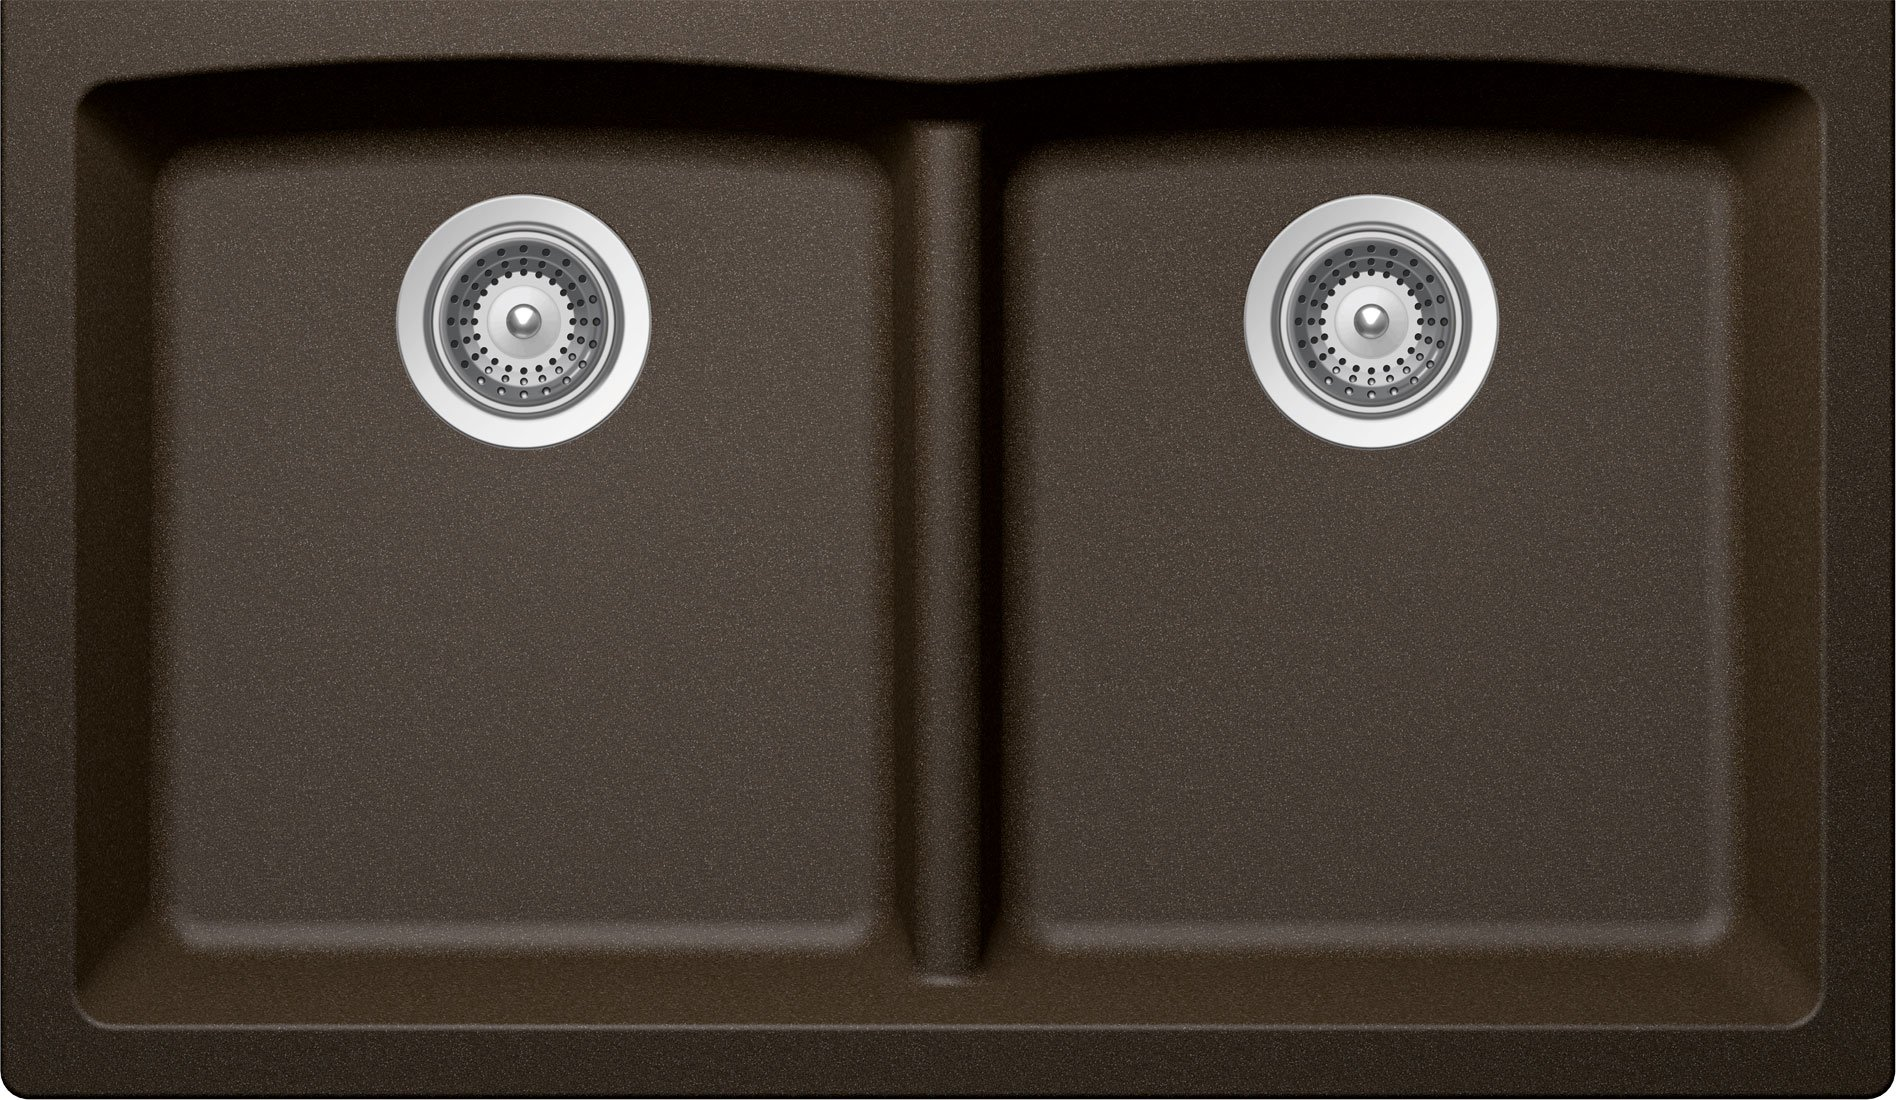 SCHOCK EDON200YU087 EDO Series CRISTADUR 50/50 Undermount Double Bowl Kitchen Sink, Bronze by Schock